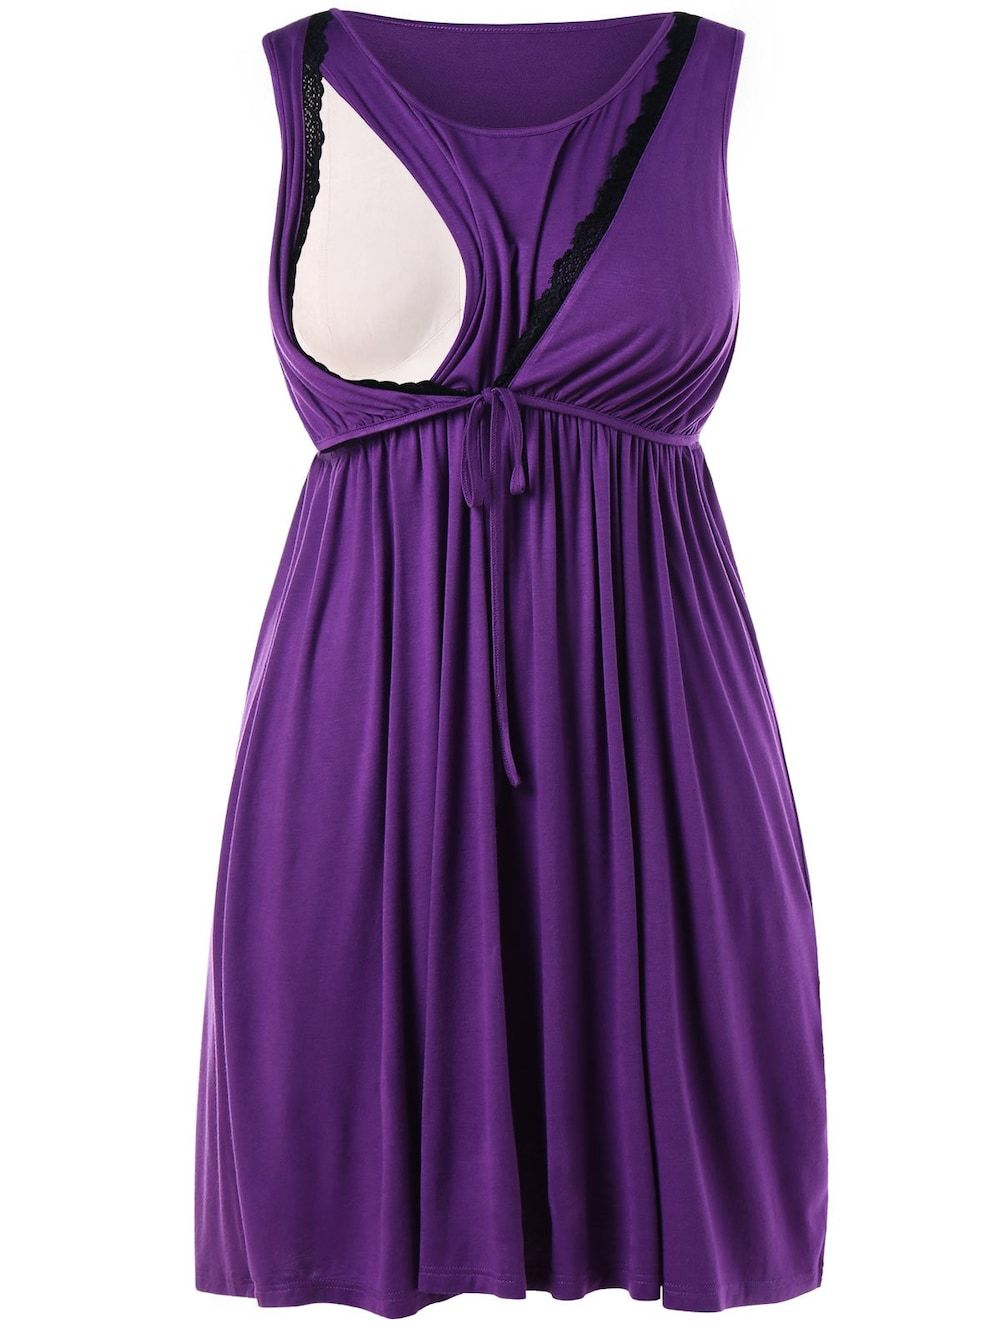 Sleeveless Plus Size Drawstring Waist Nursing Dress - VIOLET 4X ...